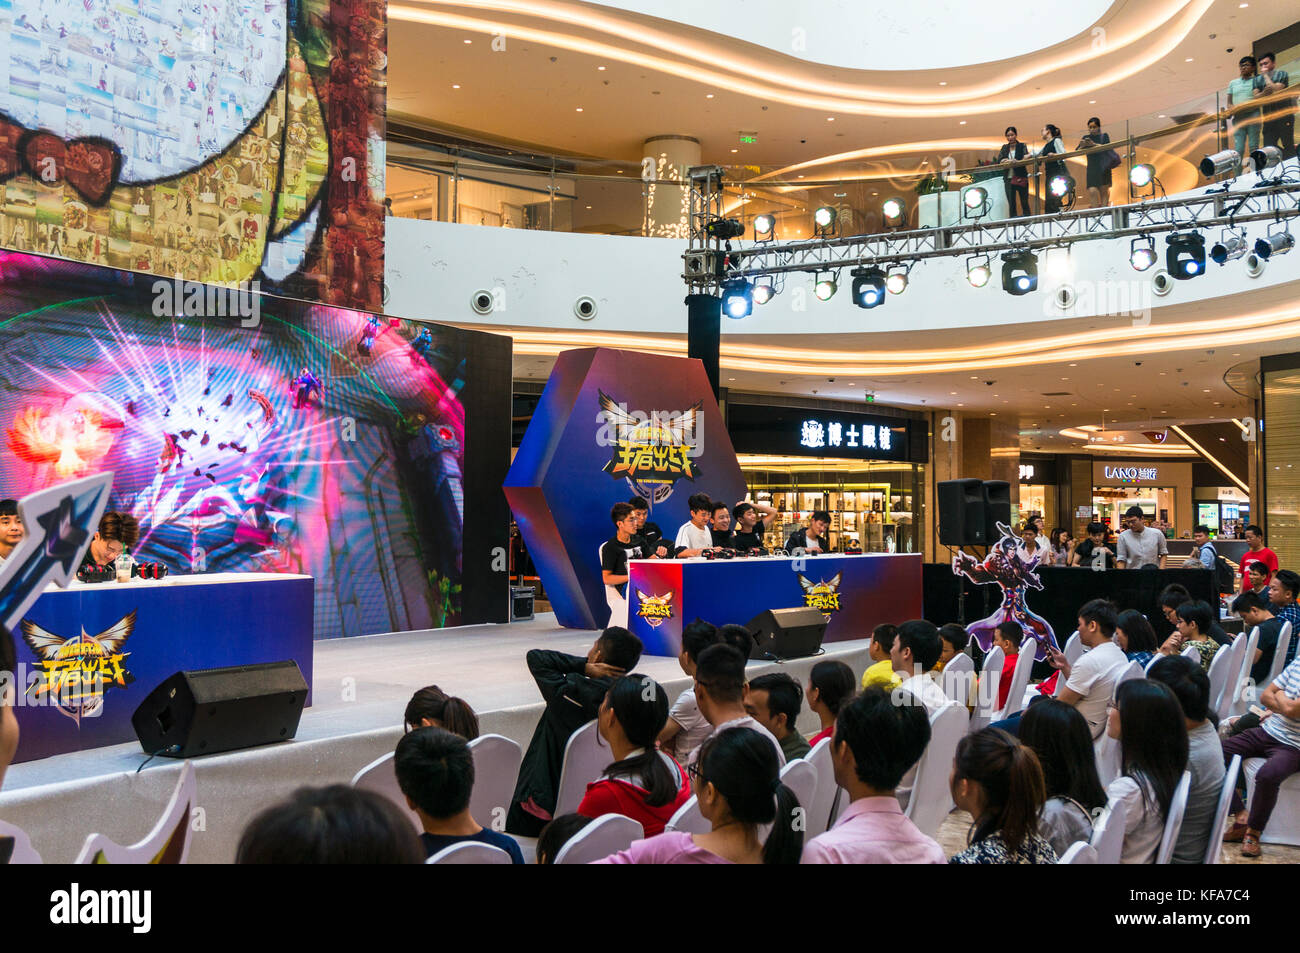 Kings Smackdown, a League of Legends style video game competition and audience in Shenzhen, China - Stock Image